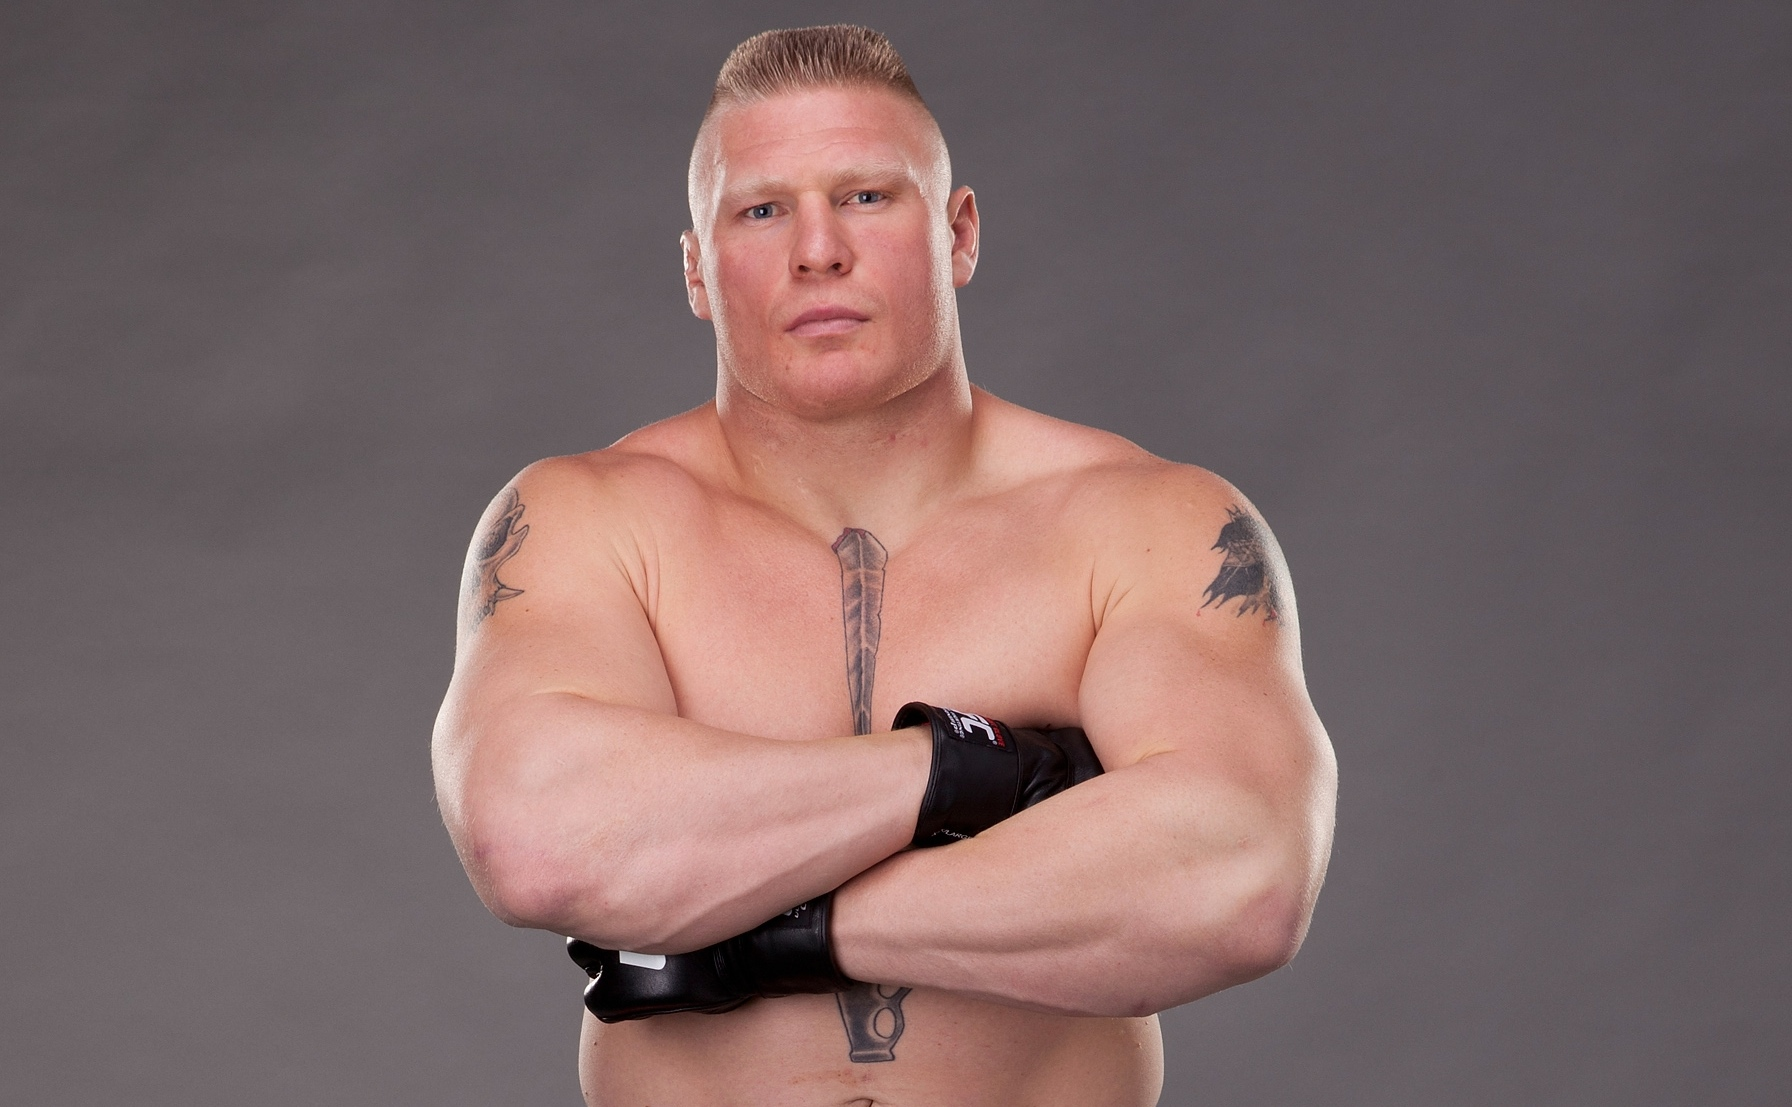 brock lesnar wallpapers images photos pictures backgrounds